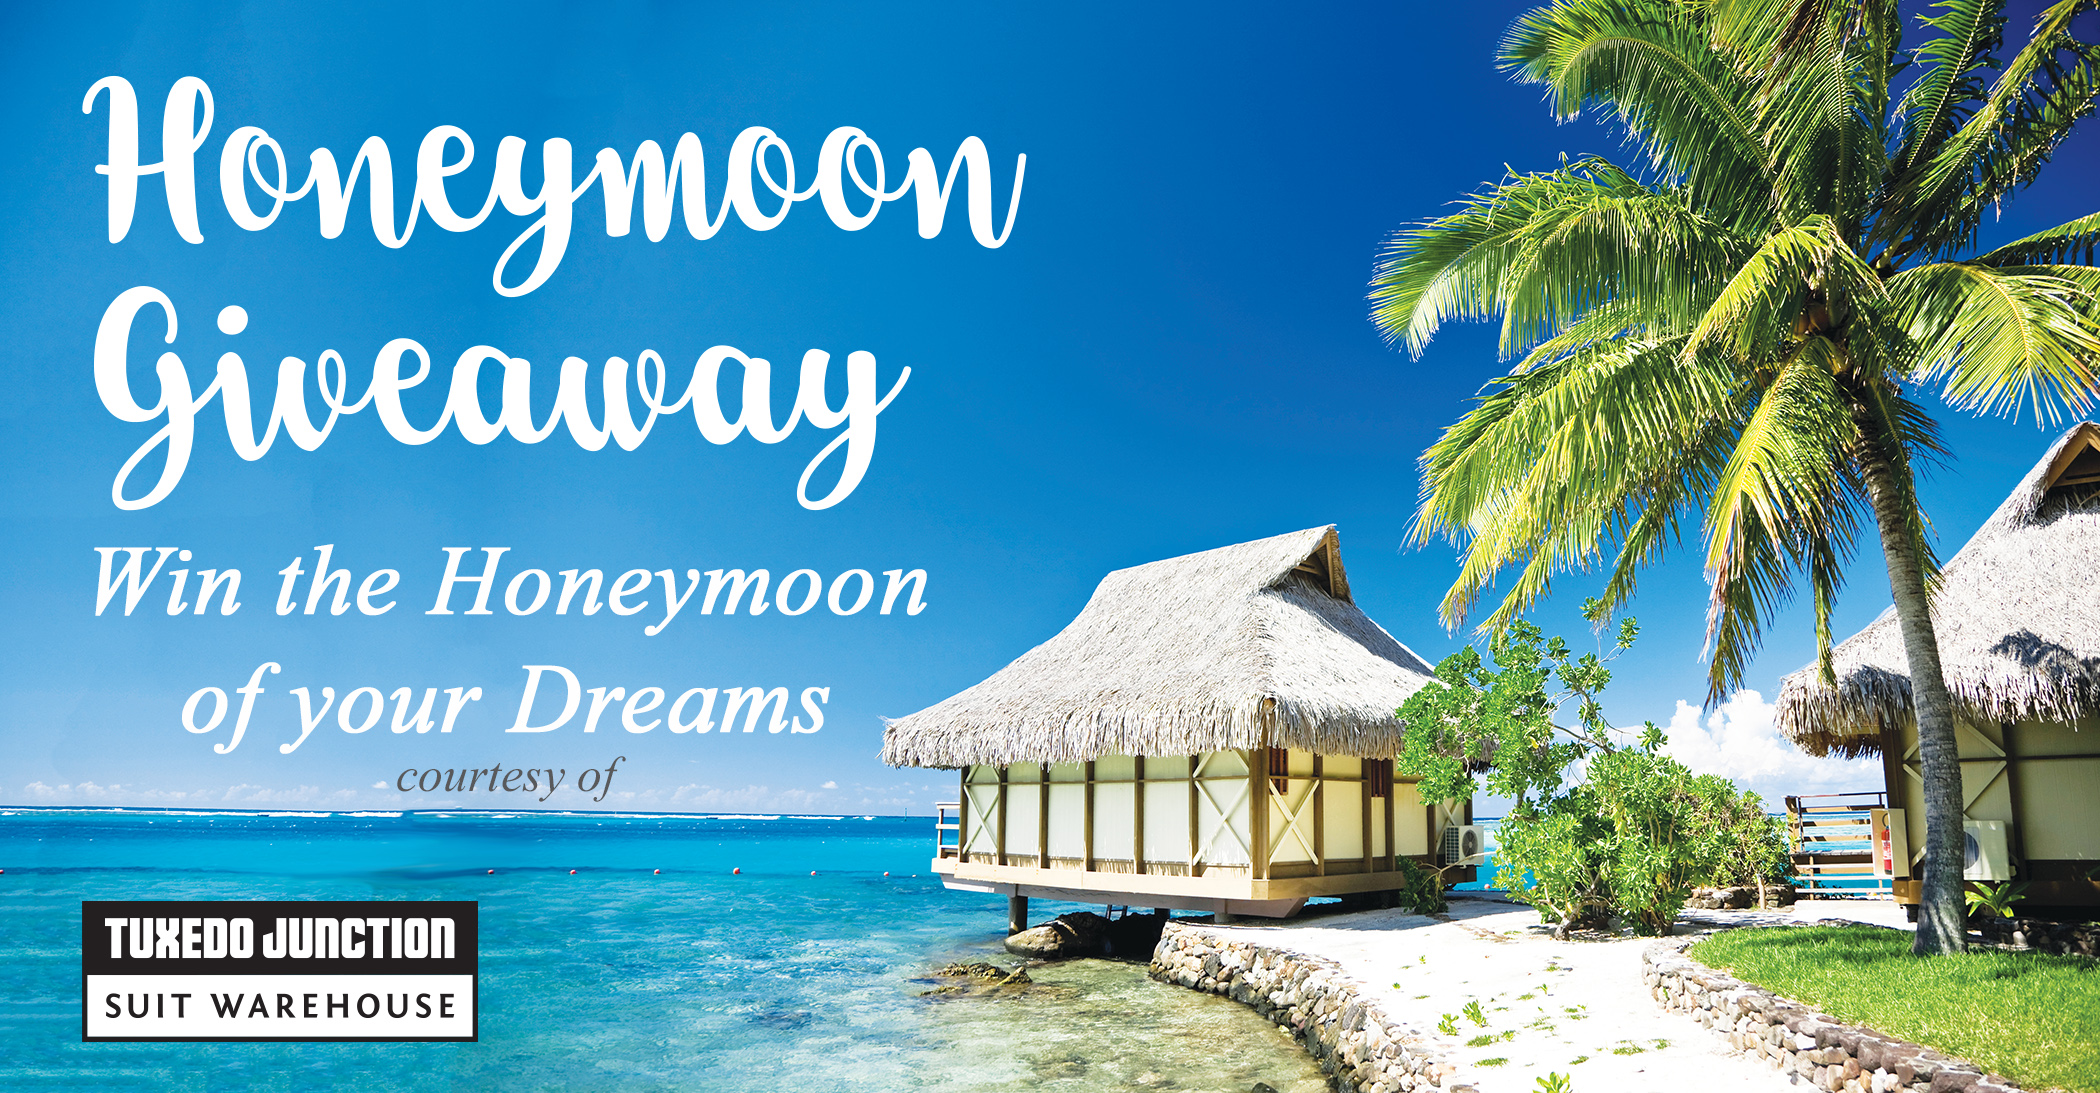 Honeymoon giveaway - Win the Honeymoon of Your Dreams